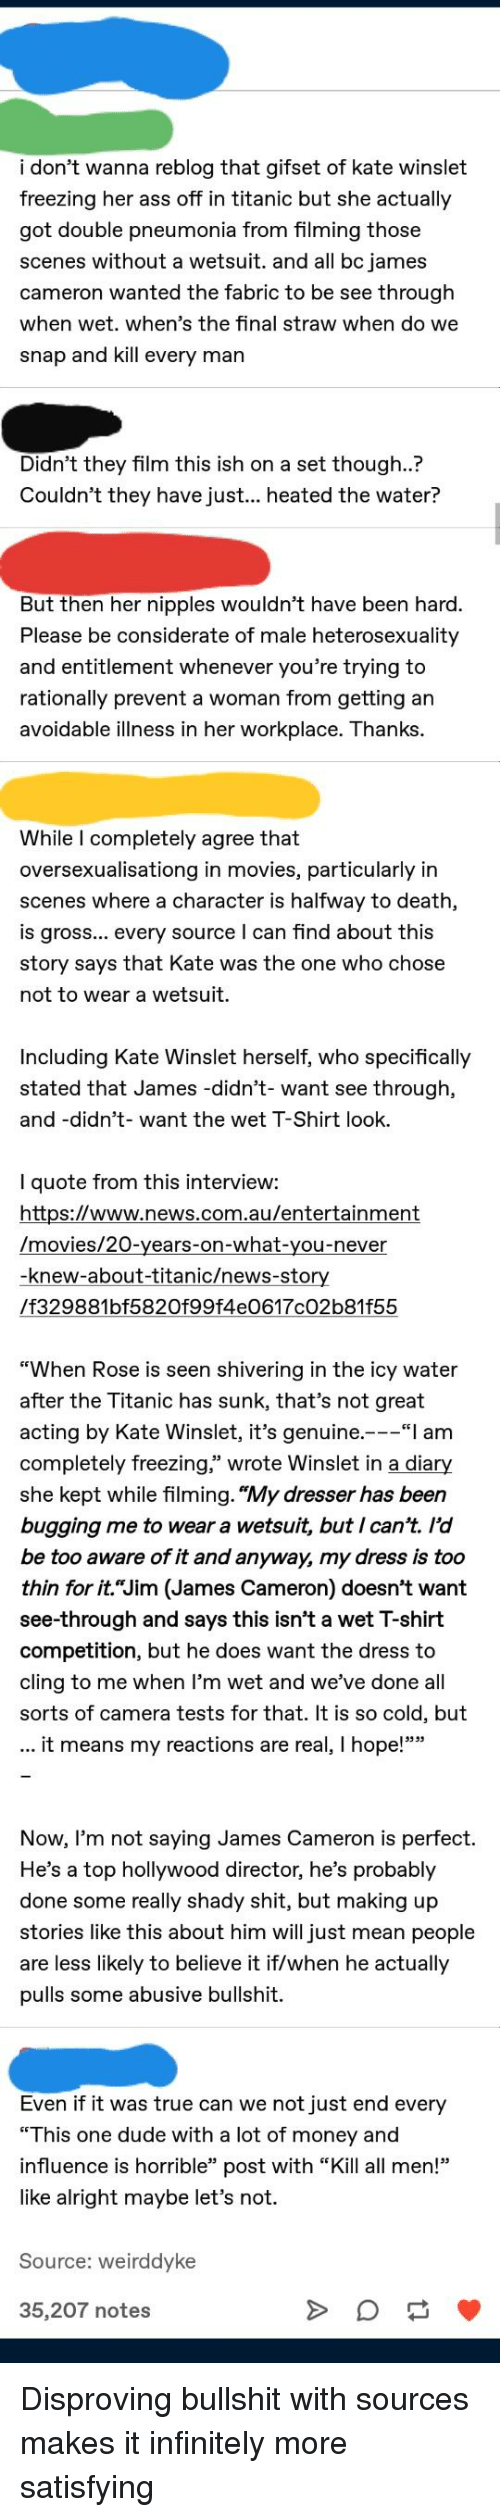 "Ass, Dude, and Money: i don't wanna reblog that gifset of kate winslet  freezing her ass off in titanic but she actually  got double pneumonia from filming those  scenes without a wetsuit. and all bc james  cameron wanted the fabric to be see through  when wet. when's the final straw when do we  snap and kill every man  Didn't they film this ish on a set though..?  Couldn't they have just... heated the water?  But then her nipples wouldn't have been hard  Please be considerate of male heterosexuality  and entitlement whenever you're trying to  rationally prevent a woman from getting an  avoidable illness in her workplace. Thanks  While l completely agree that  oversexualisationg in movies, particularly in  scenes where a character is halfway to death  is gross... every source I can find about this  story says that Kate was the one who chose  not to wear a wetsuit.  Including Kate Winslet herself, who specifically  stated that James -didn't- want see through,  and -didn't- want the wet T-Shirt look.  I quote from this interview:  https://www.news.com.au/entertainment  /movies/20-years-on-what-you-never  -knew-about-titanic/news-stor  /f329881bf5820f99f4e0617c02b81f55  When Rose is seen shivering in the icy water  after the Titanic has sunk, that's not great  acting by Kate Winslet, it's genuine.-""I am  completely freezing,"" wrote Winslet in a diary  she kept while filming. ""My dresser has been  bugging me to wear a wetsuit, but I can't. l'd  be too aware of it and anyway, my dress is too  thin for it.""Jim (James Cameron) doesn't want  see-through and says this isn't a wet T-shirt  competition, but he does want the dress to  cling to me when l'm wet and we've done all  sorts of camera tests for that. It is so cold, but  it means my reactions are real, I hope!""""  Now, I'm not saying James Cameron is perfect.  He's a top hollywood director, he's probably  done some really shady shit, but making up  stories like this about him will just mean people  are less likely to believe it if/when he actually  pulls some abusive bullshit.  Even if it was true can we not just end every  ""This one dude with a lot of money and  influence is horrible"" post with ""Kill all men!""  like alright maybe let's not.  Source: weirddyke  35,207 notes"